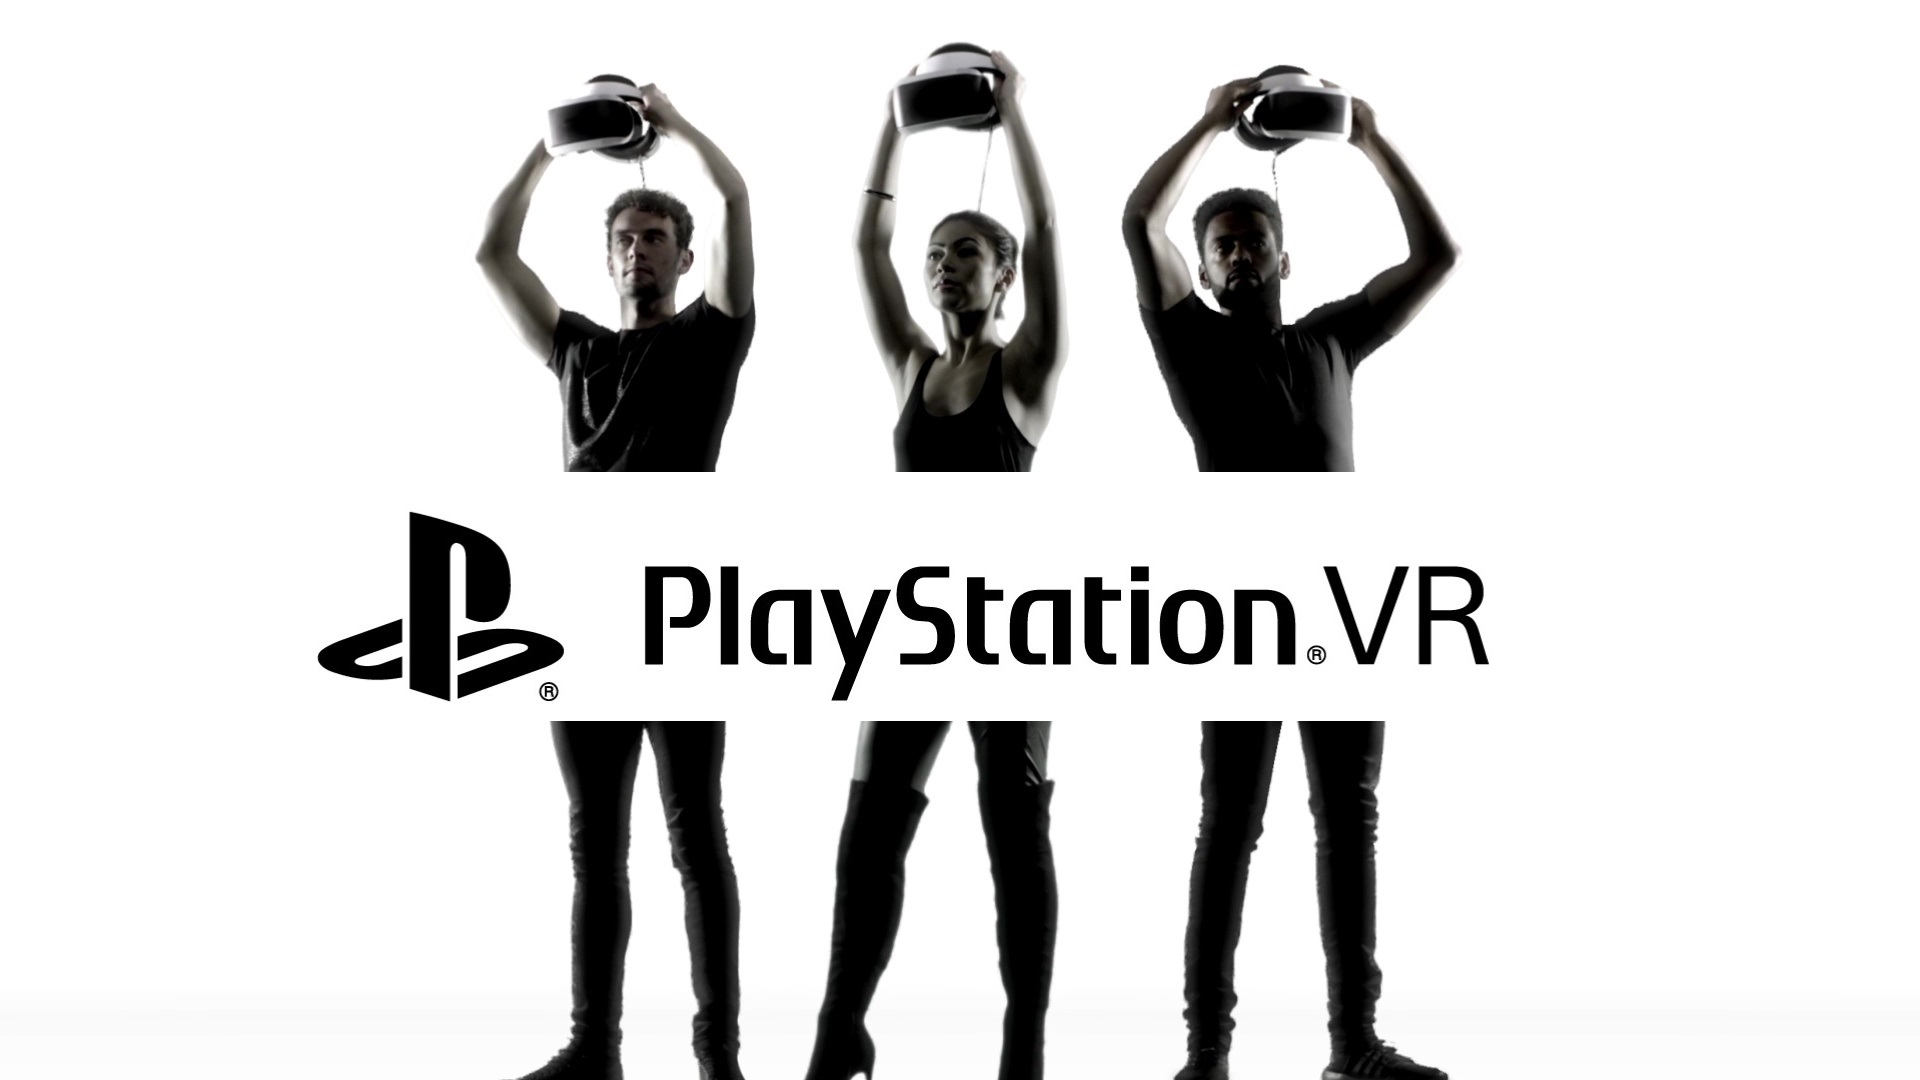 sony playstation vr logo. the sony developed playstation vr (ps vr) is said to be marketed as its own platform although will need tethered 4 games console vr logo